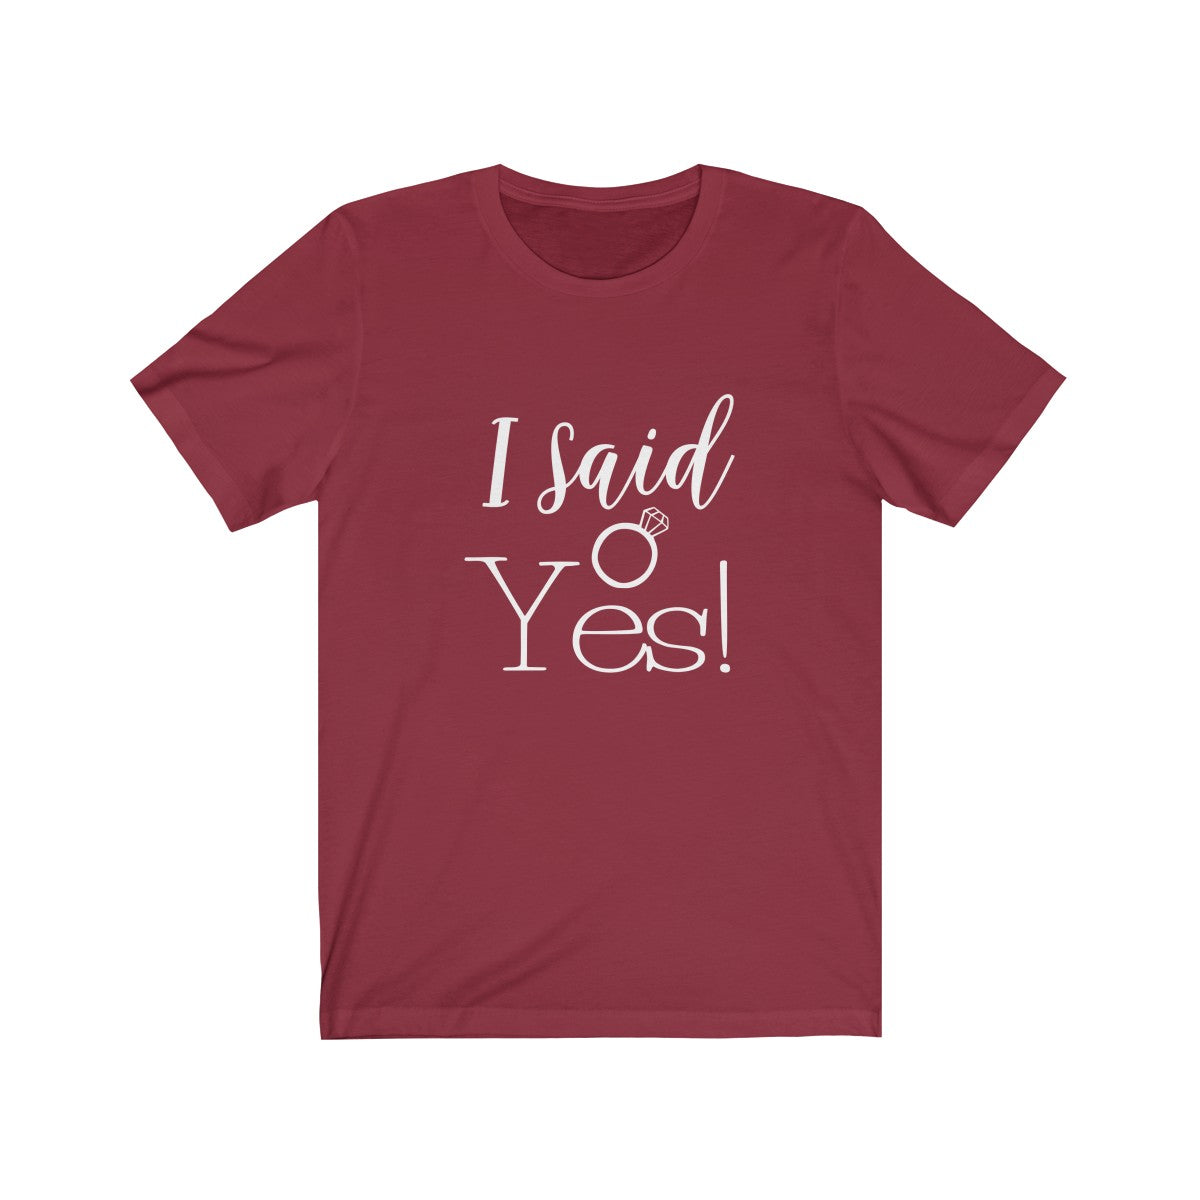 Tee I said yes location white lettering - elrileygifts